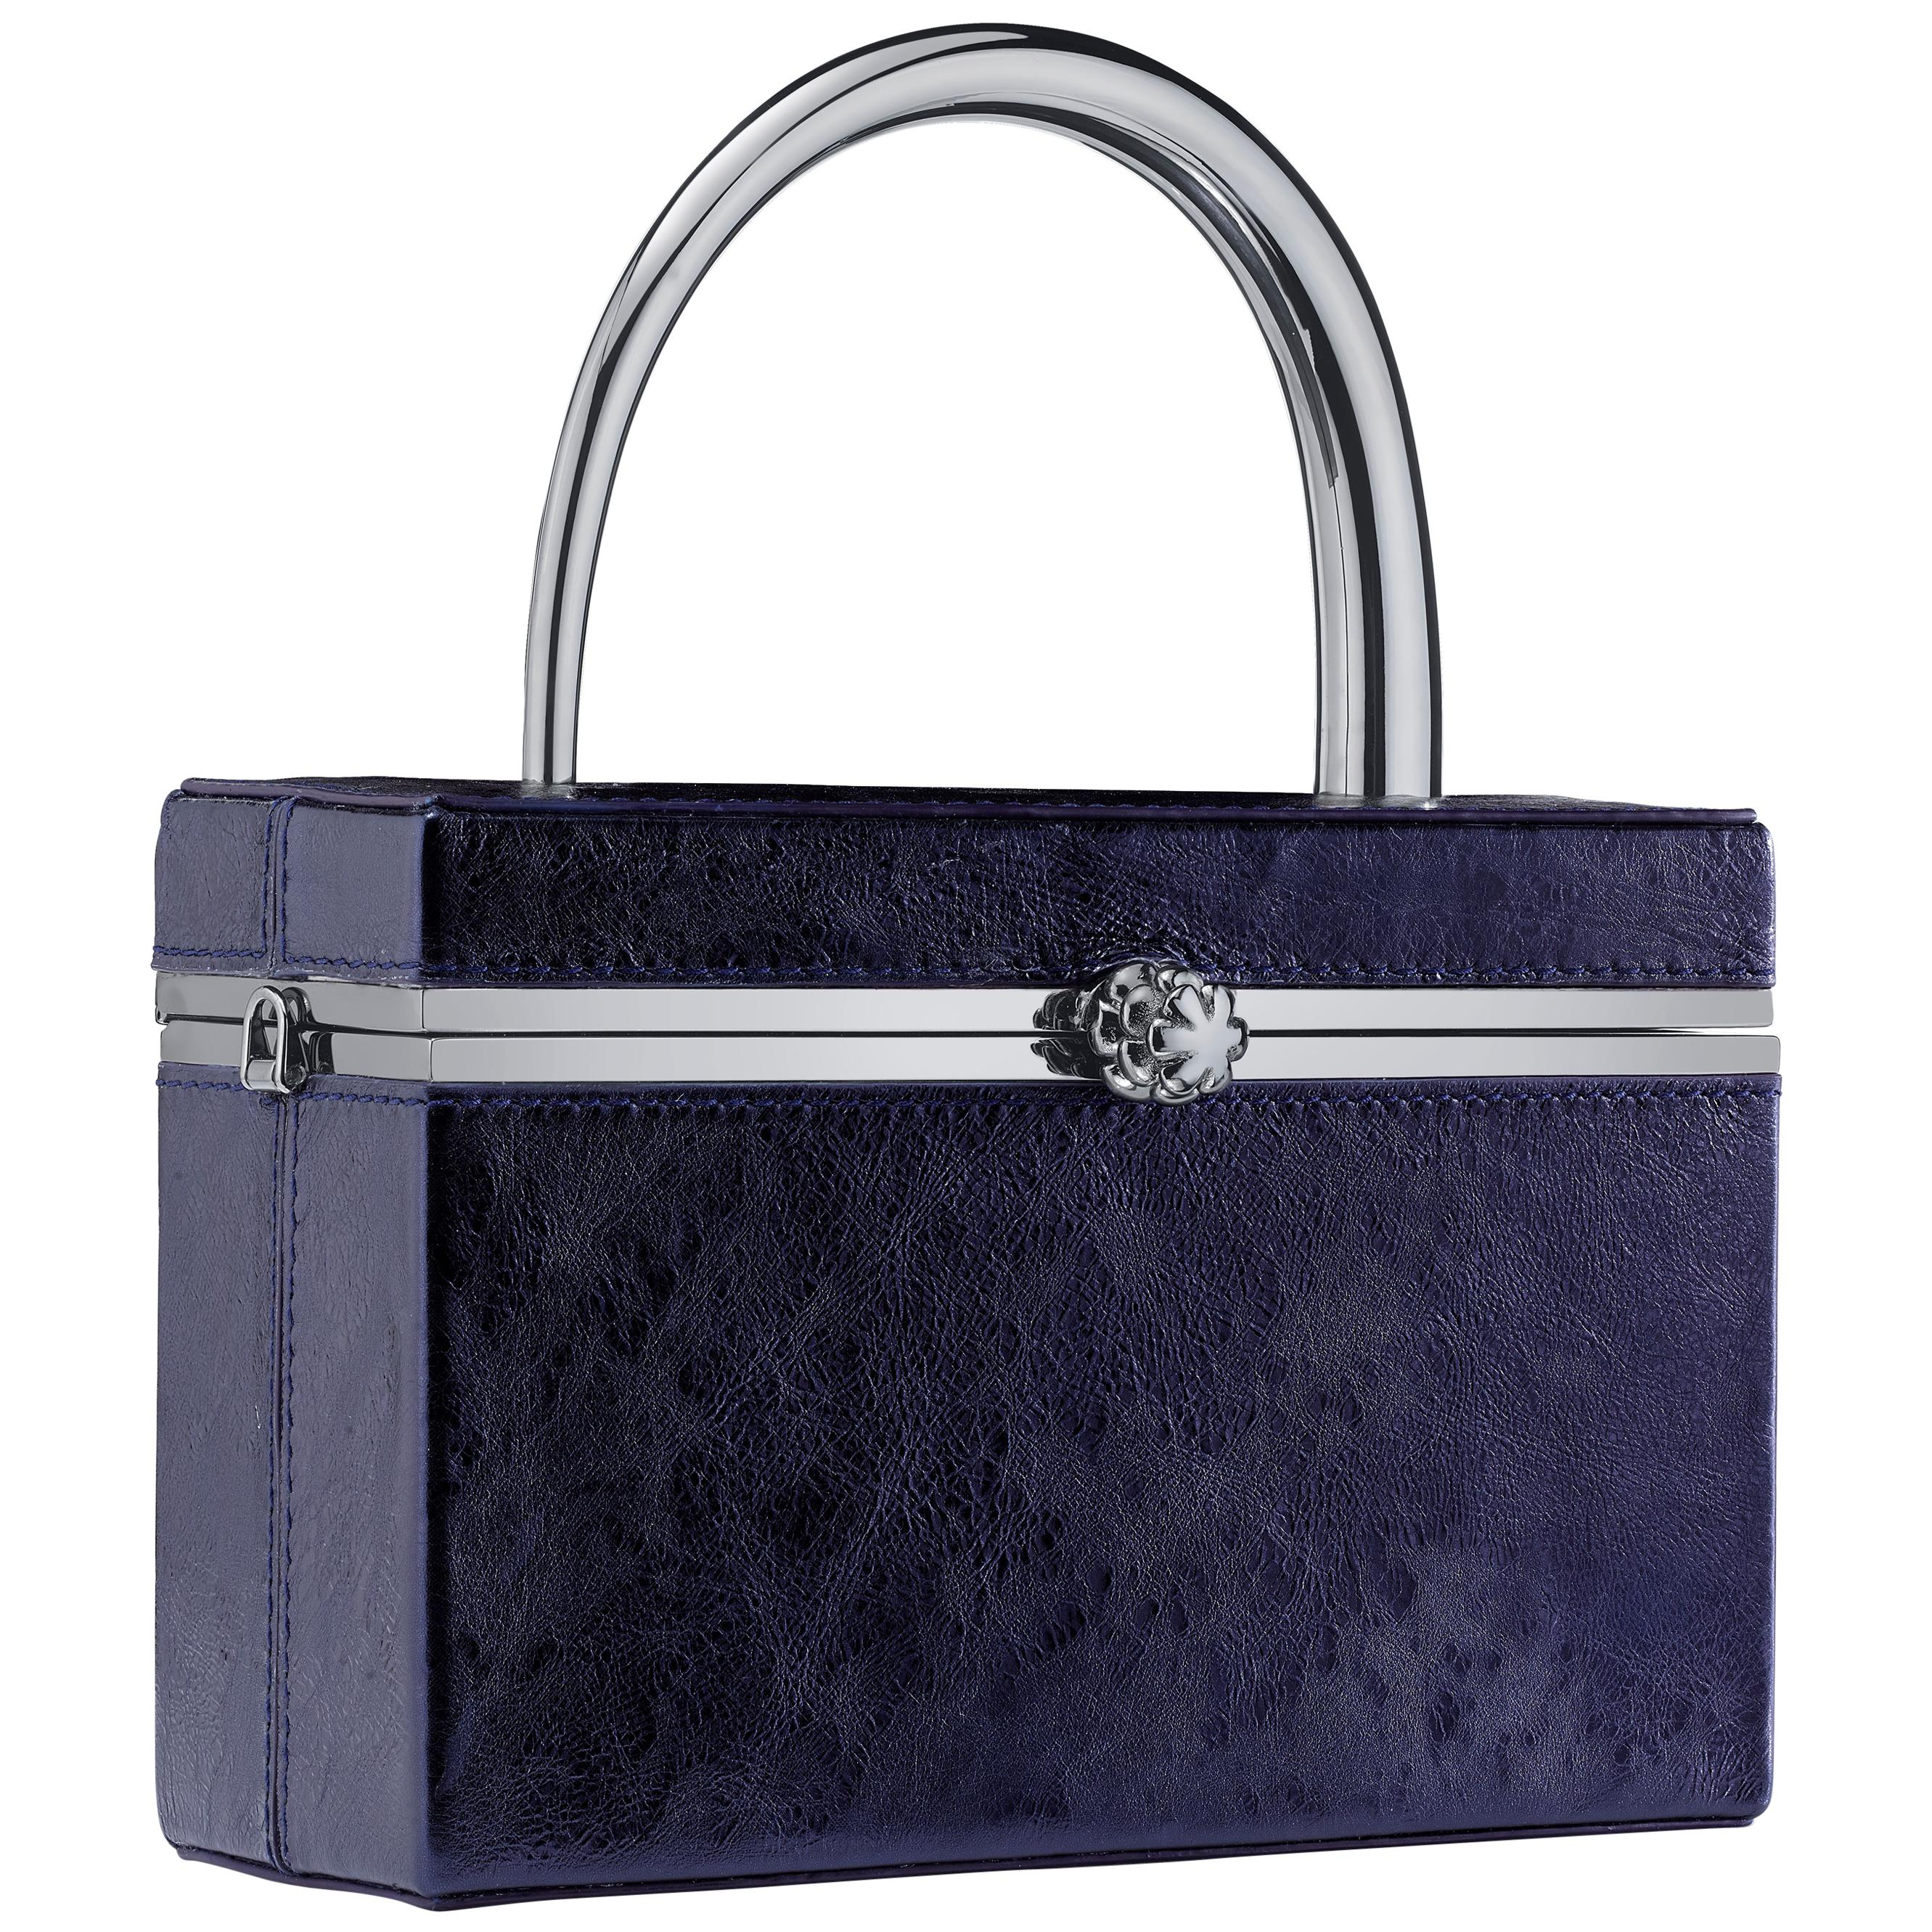 TYLER ELLIS Ava Box in Sapphire Blue Antiqued Leather with Gunmetal Handle